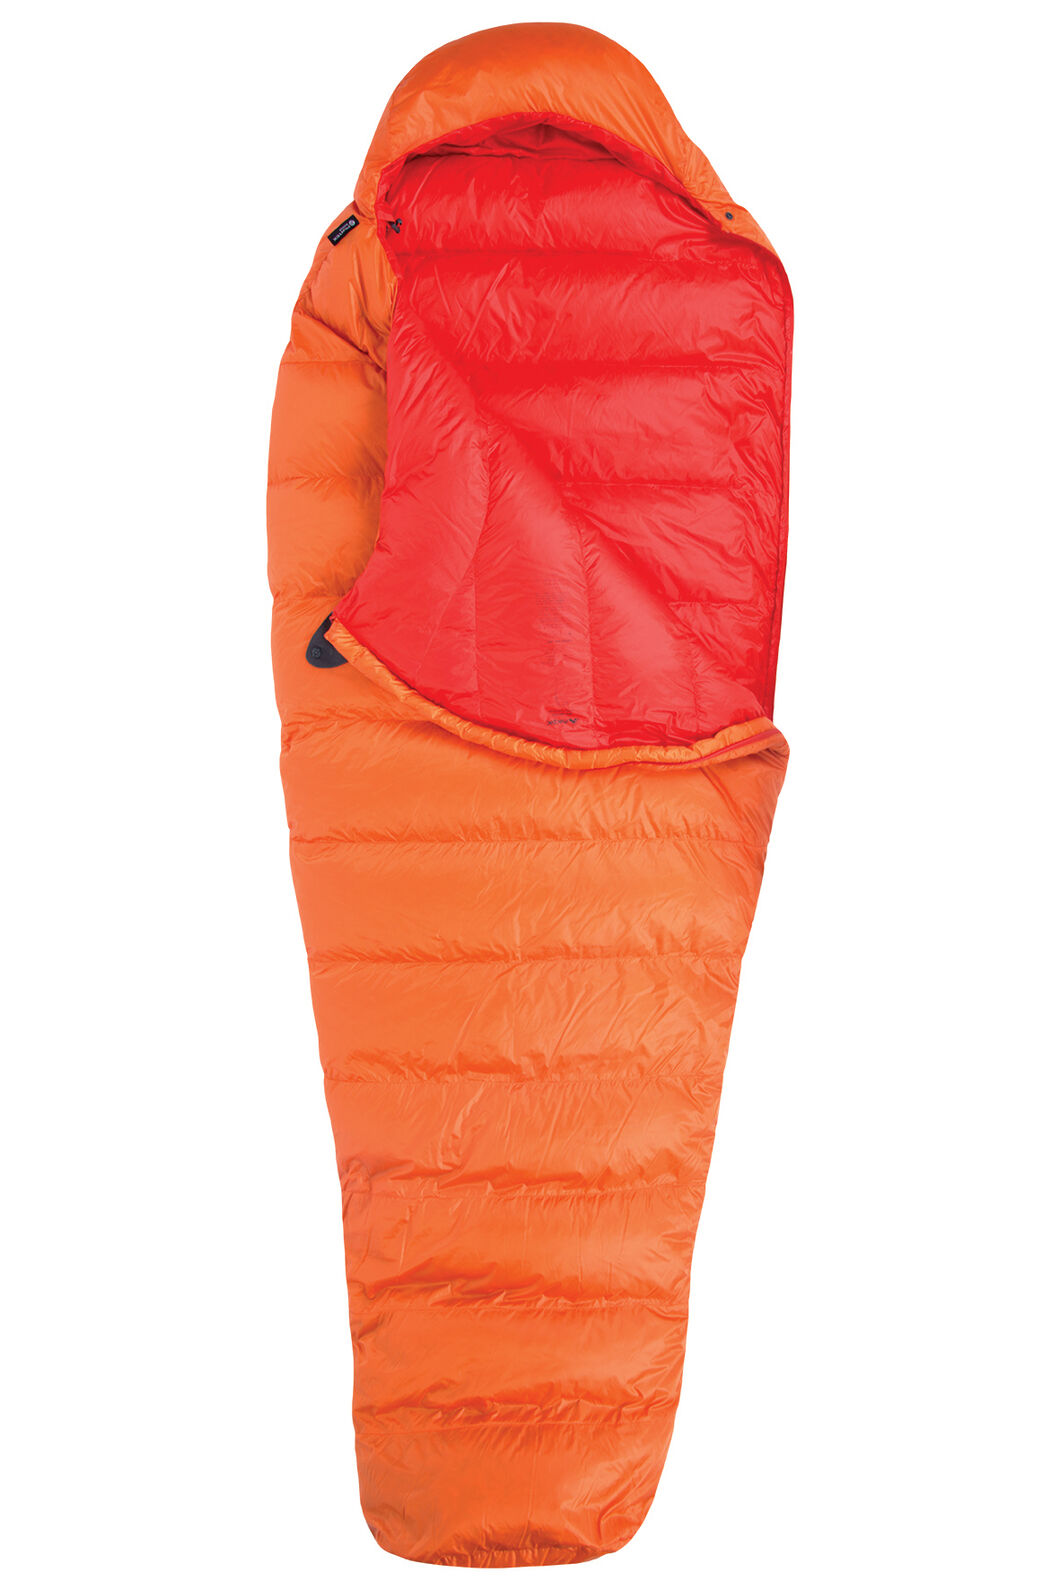 Macpac Epic HyperDRY™ Down 400 Sleeping Bag - Extra Large, Exuberance/ Indicator, hi-res